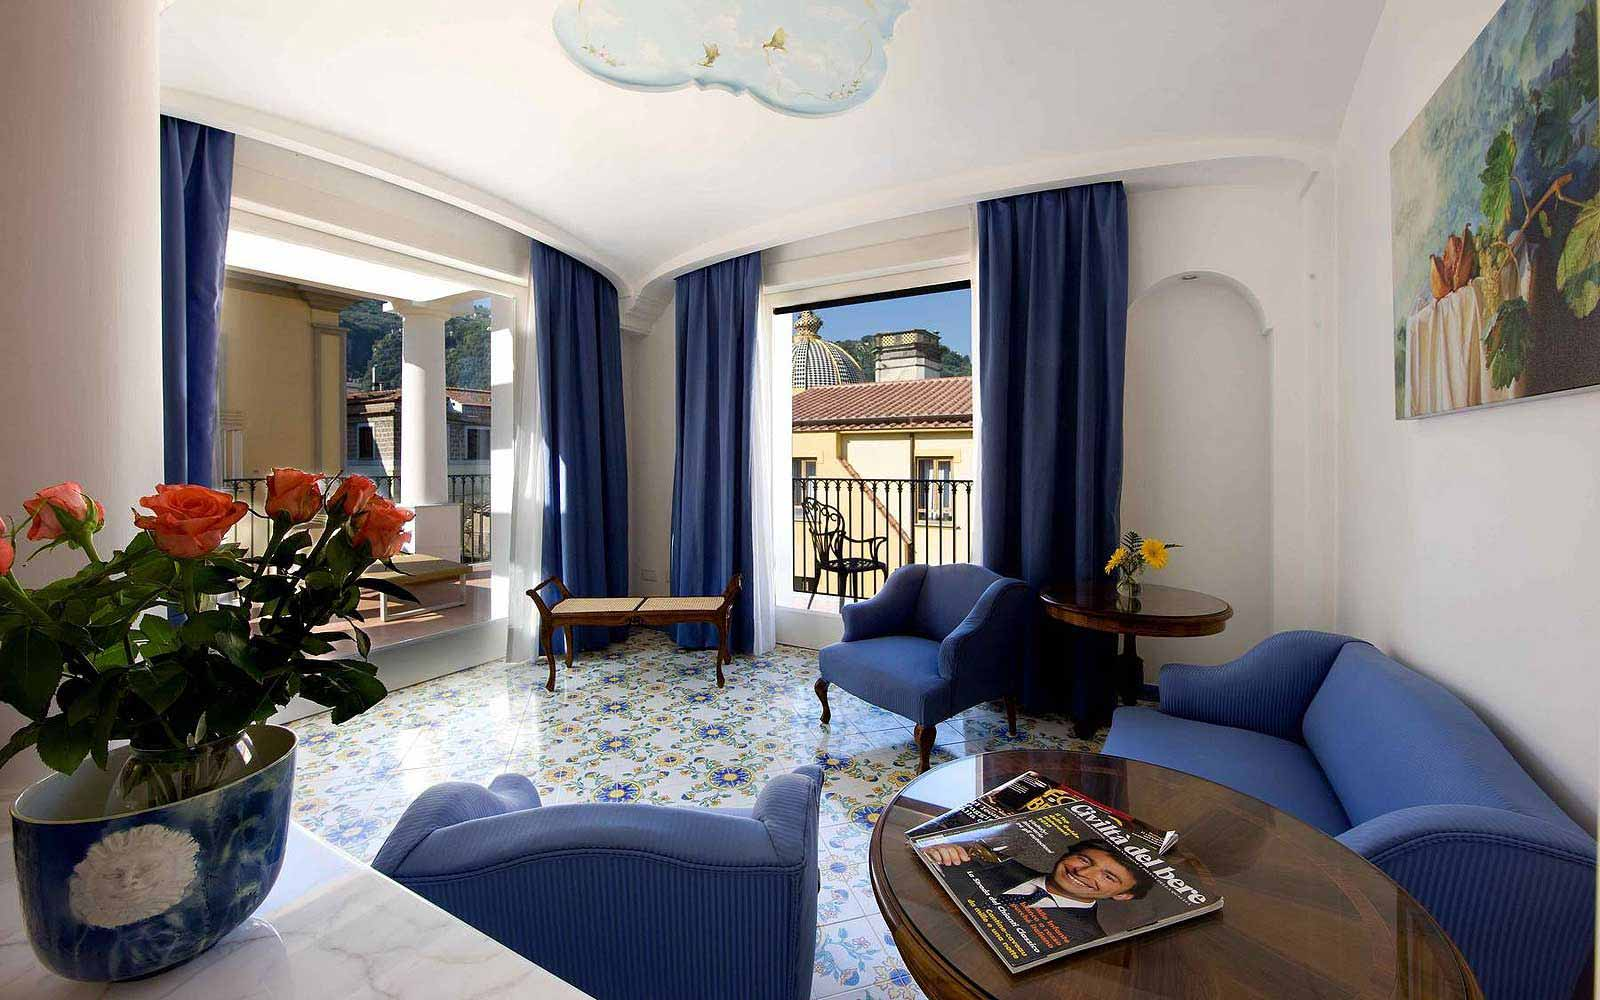 Junior Suite at the Grand Hotel La Favorita